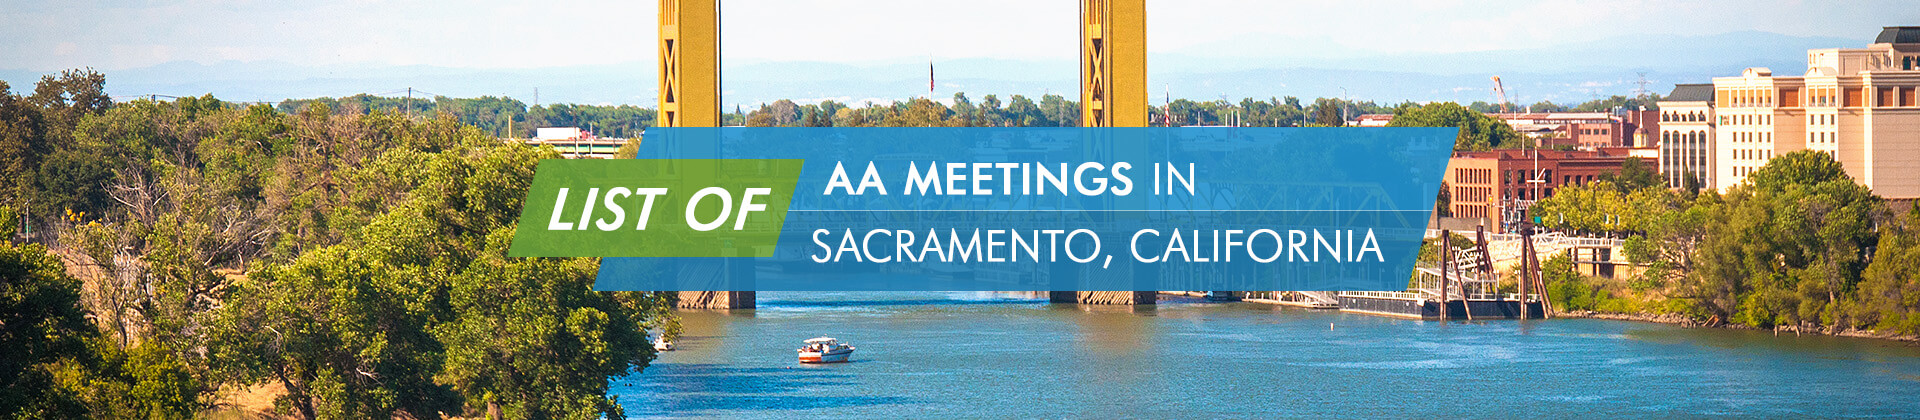 List Of AA Meetings Sacramento California